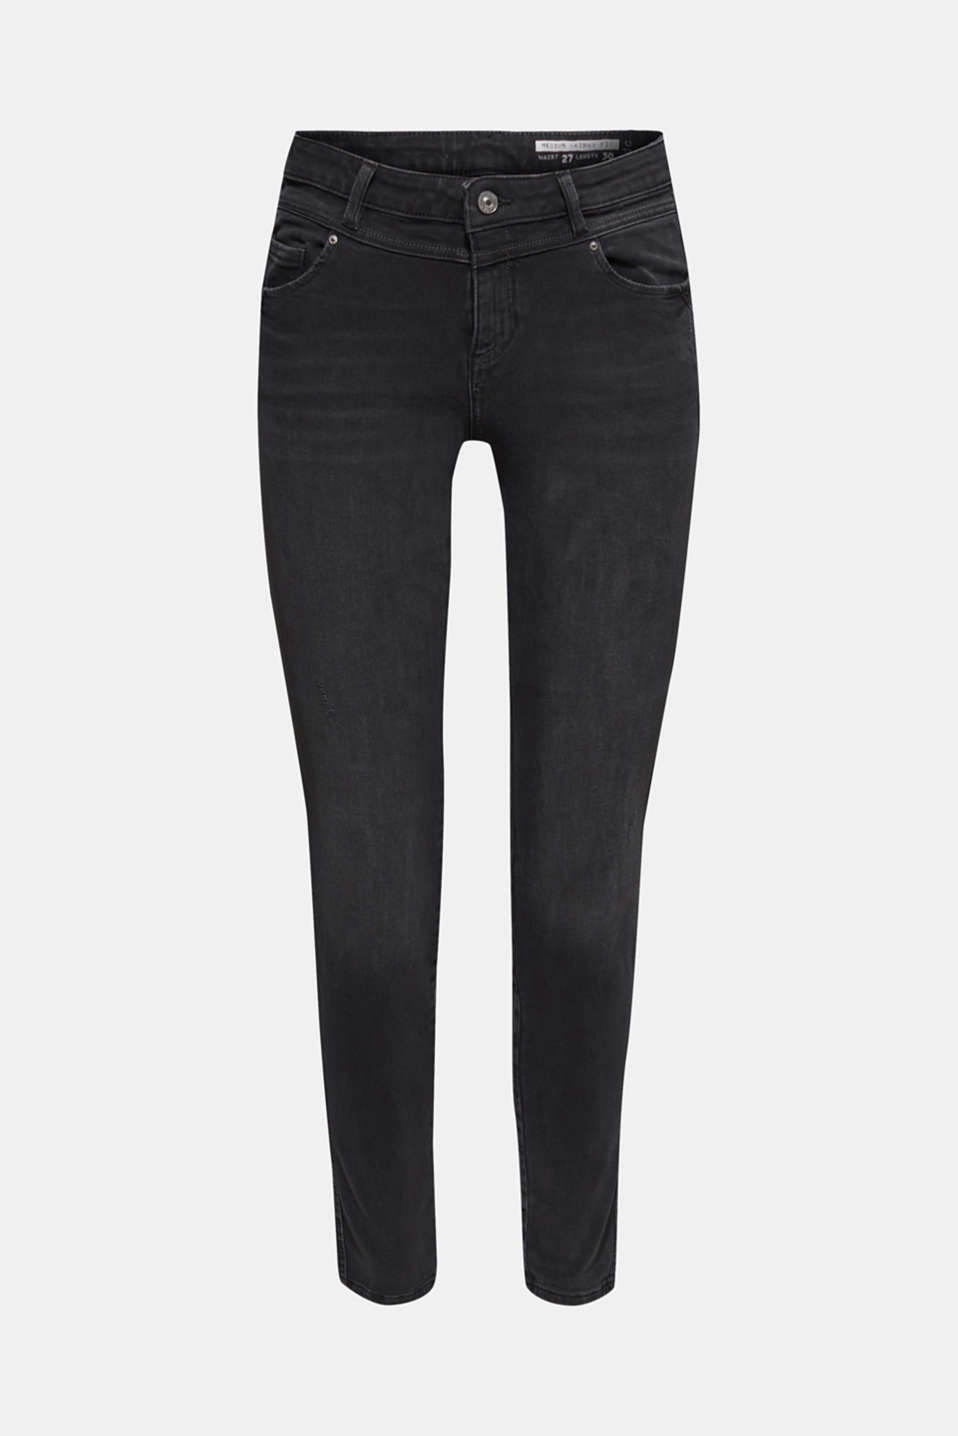 With TENCEL™: Shaping jeans with two-way stretch, BLACK DARK WASH, detail image number 7